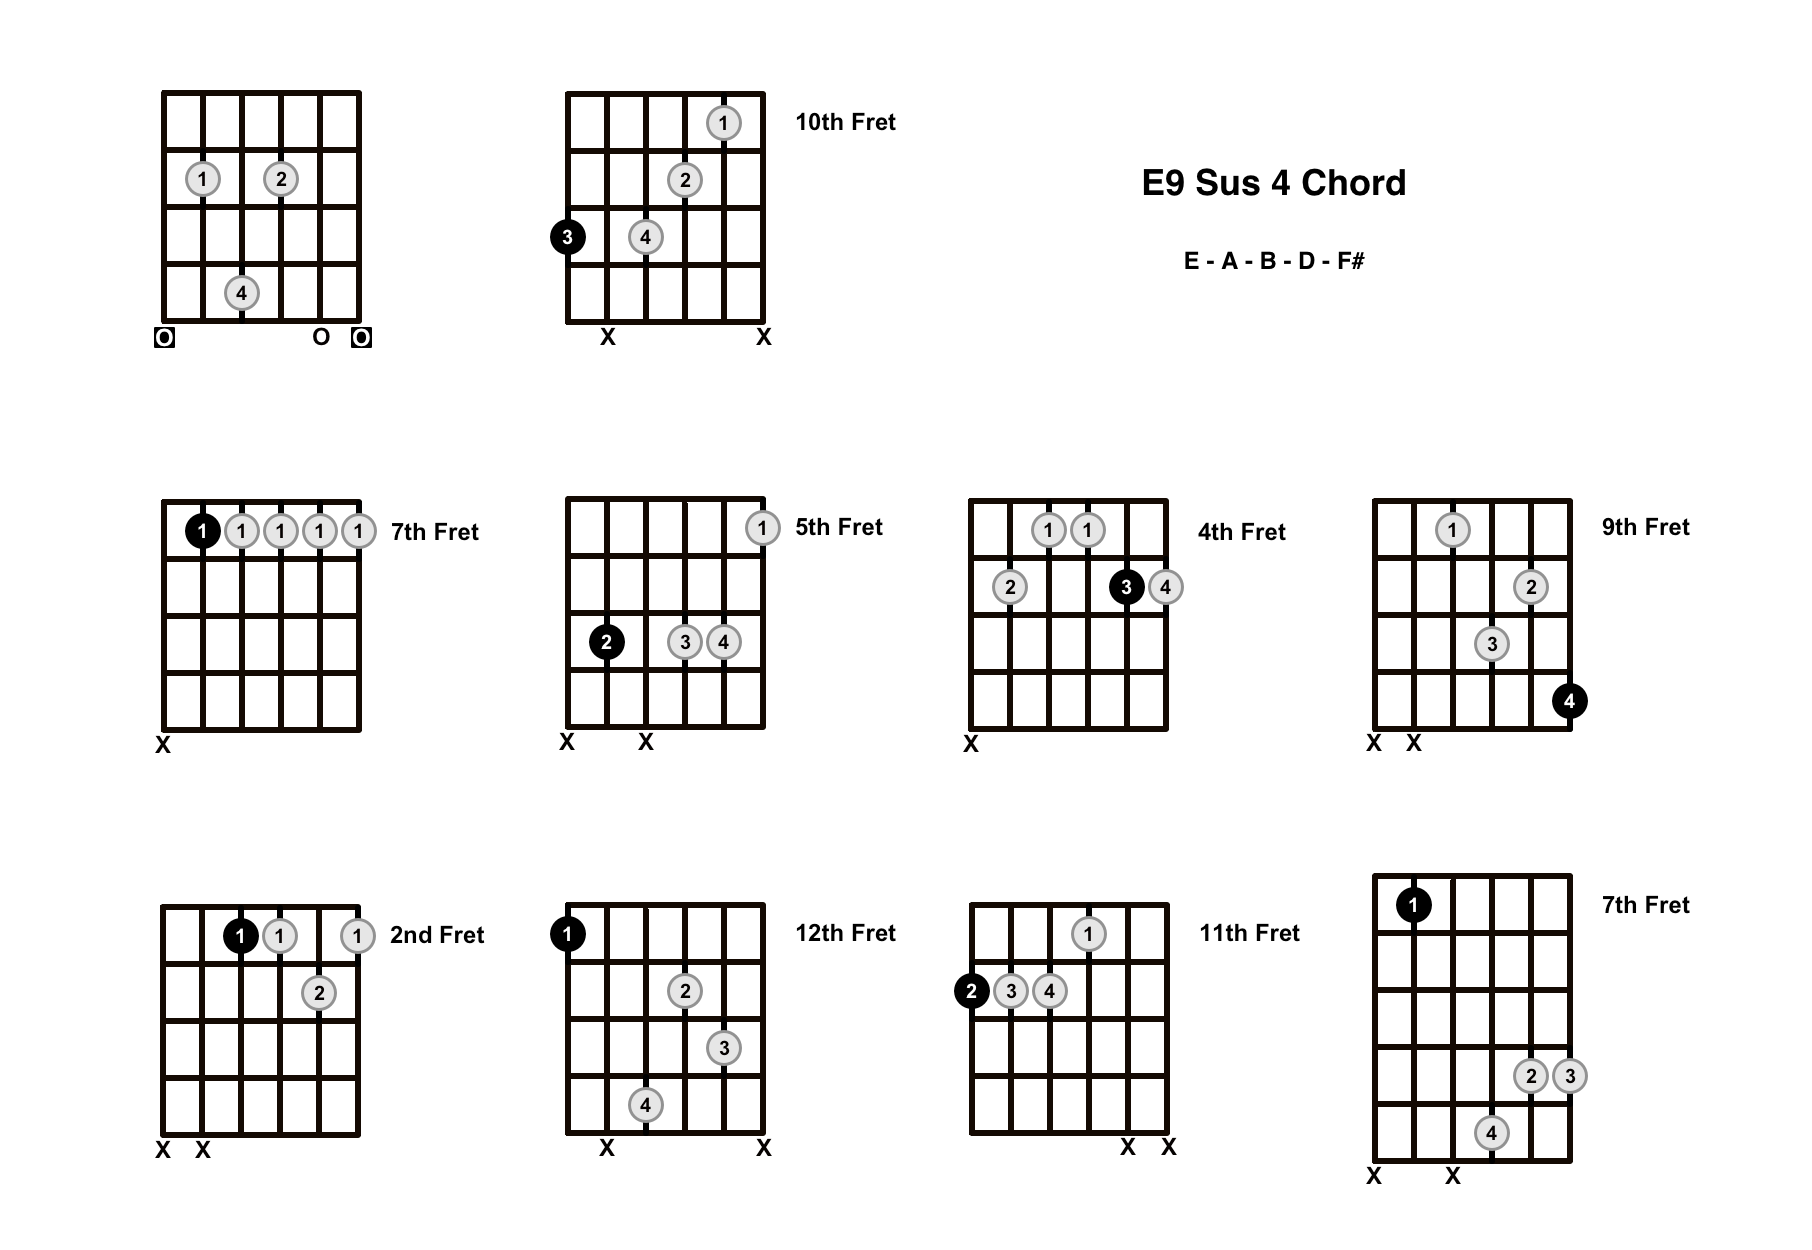 E9 Sus 4 Chord On The Guitar (E9 Suspended 4, D/E) – Diagrams, Finger Positions and Theory